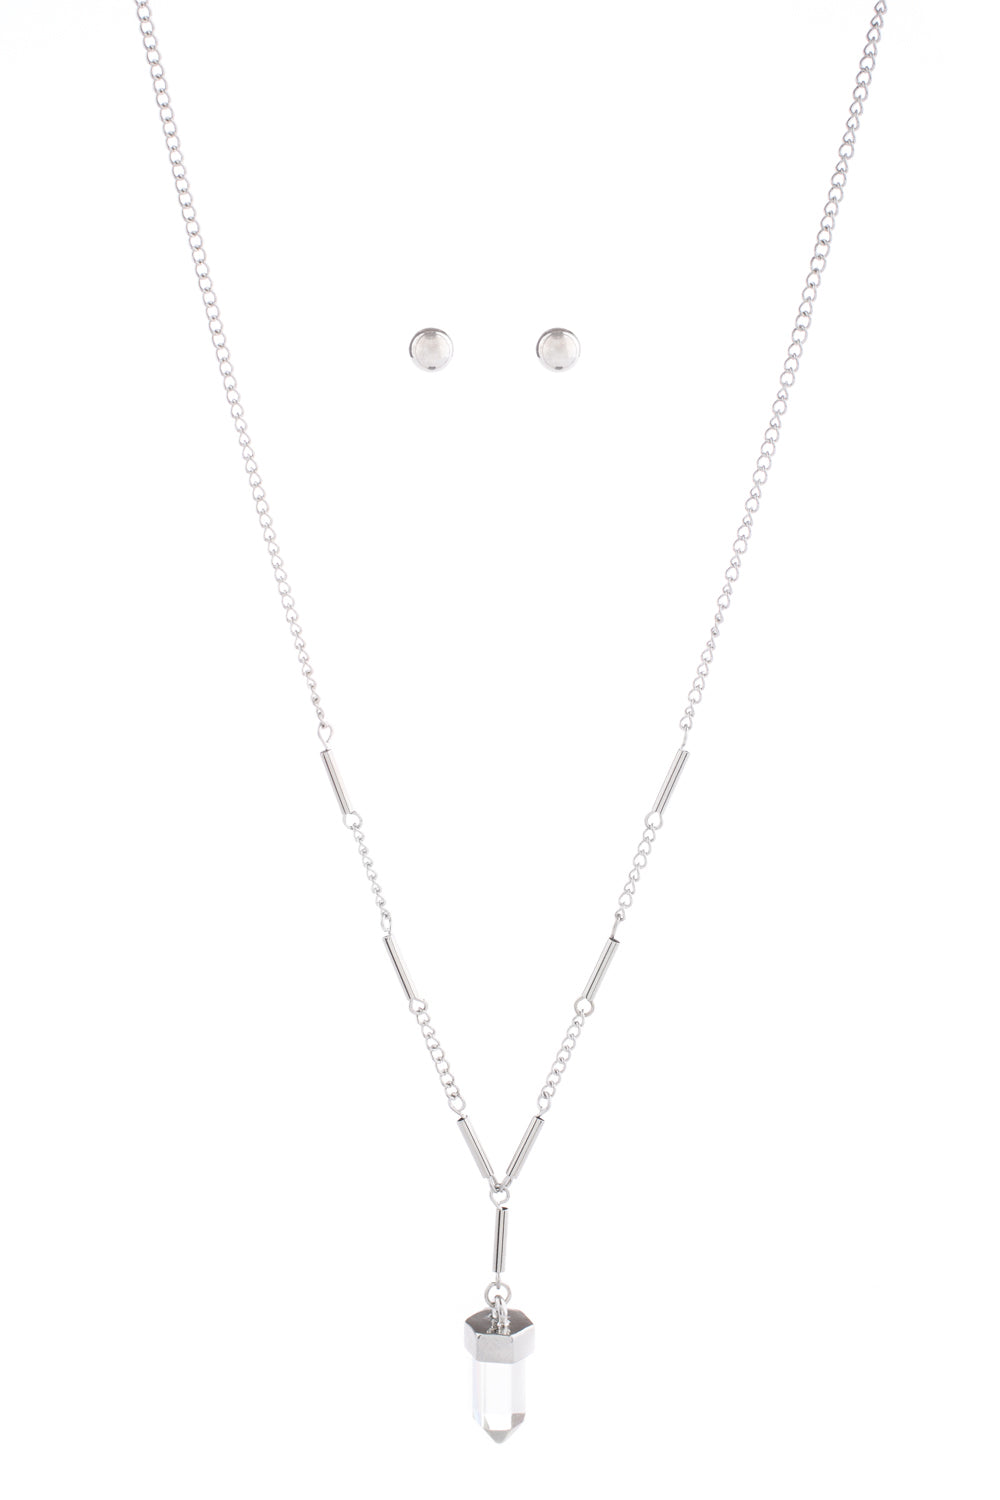 Type 4 The Right Path Necklace Set